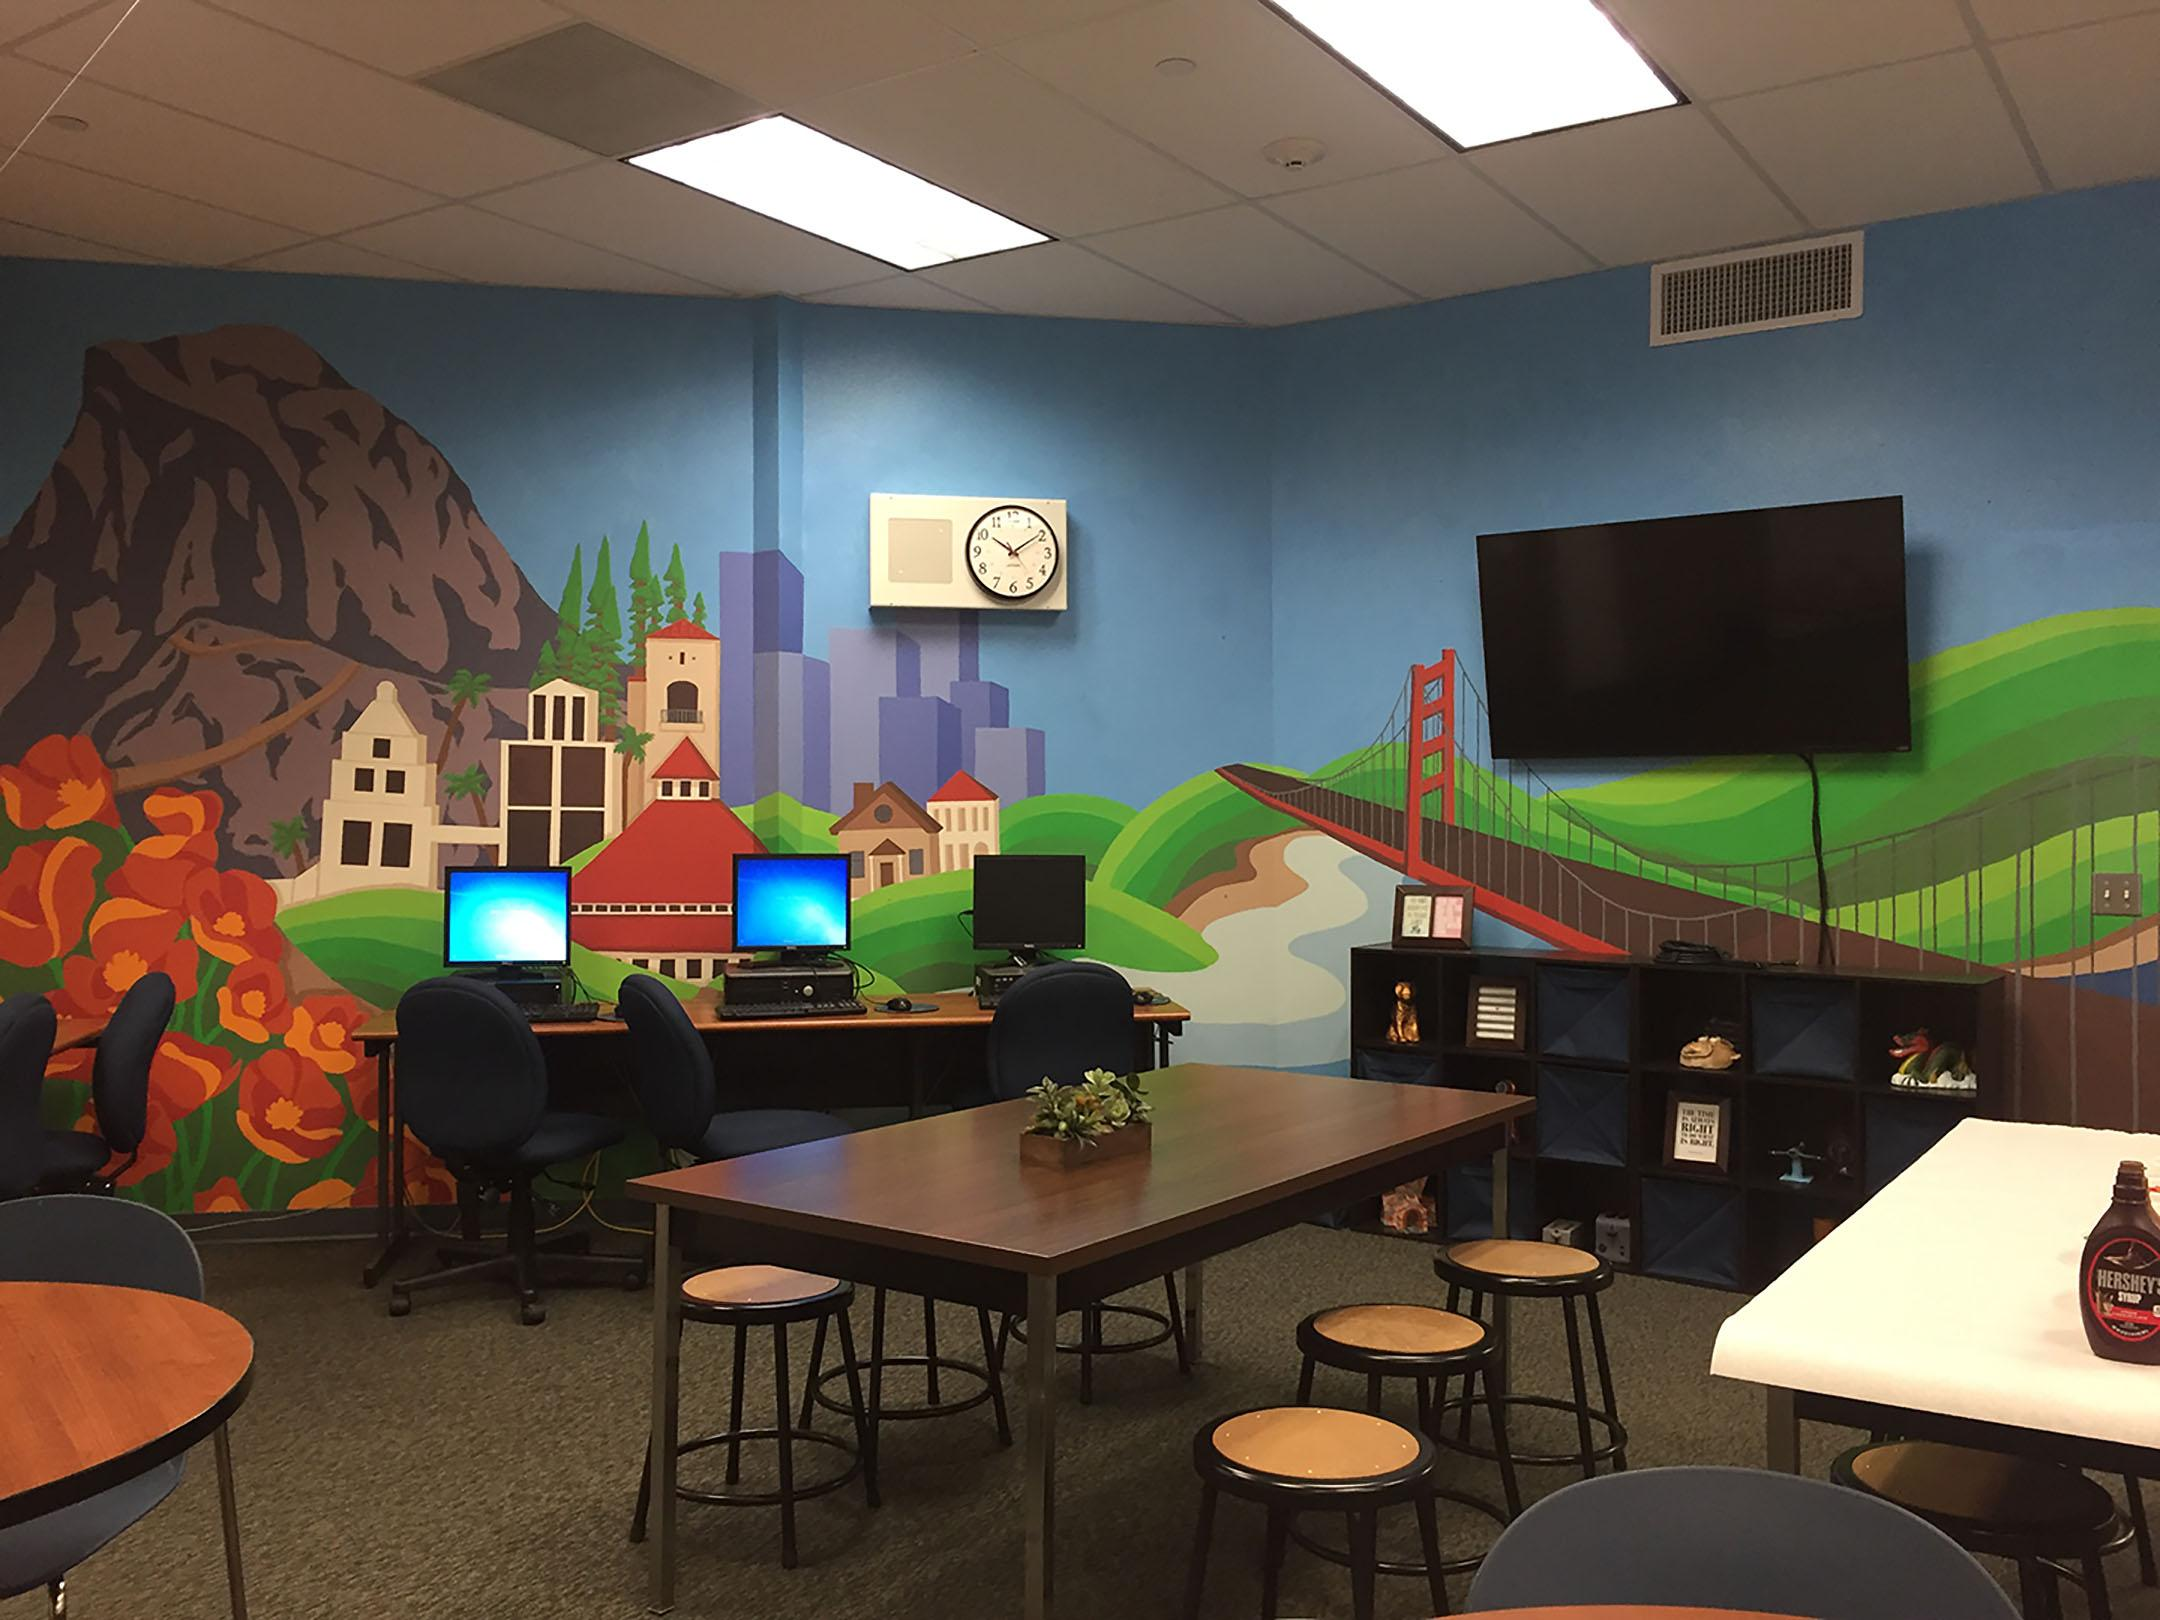 Counseling department is the new home to California themed mural.